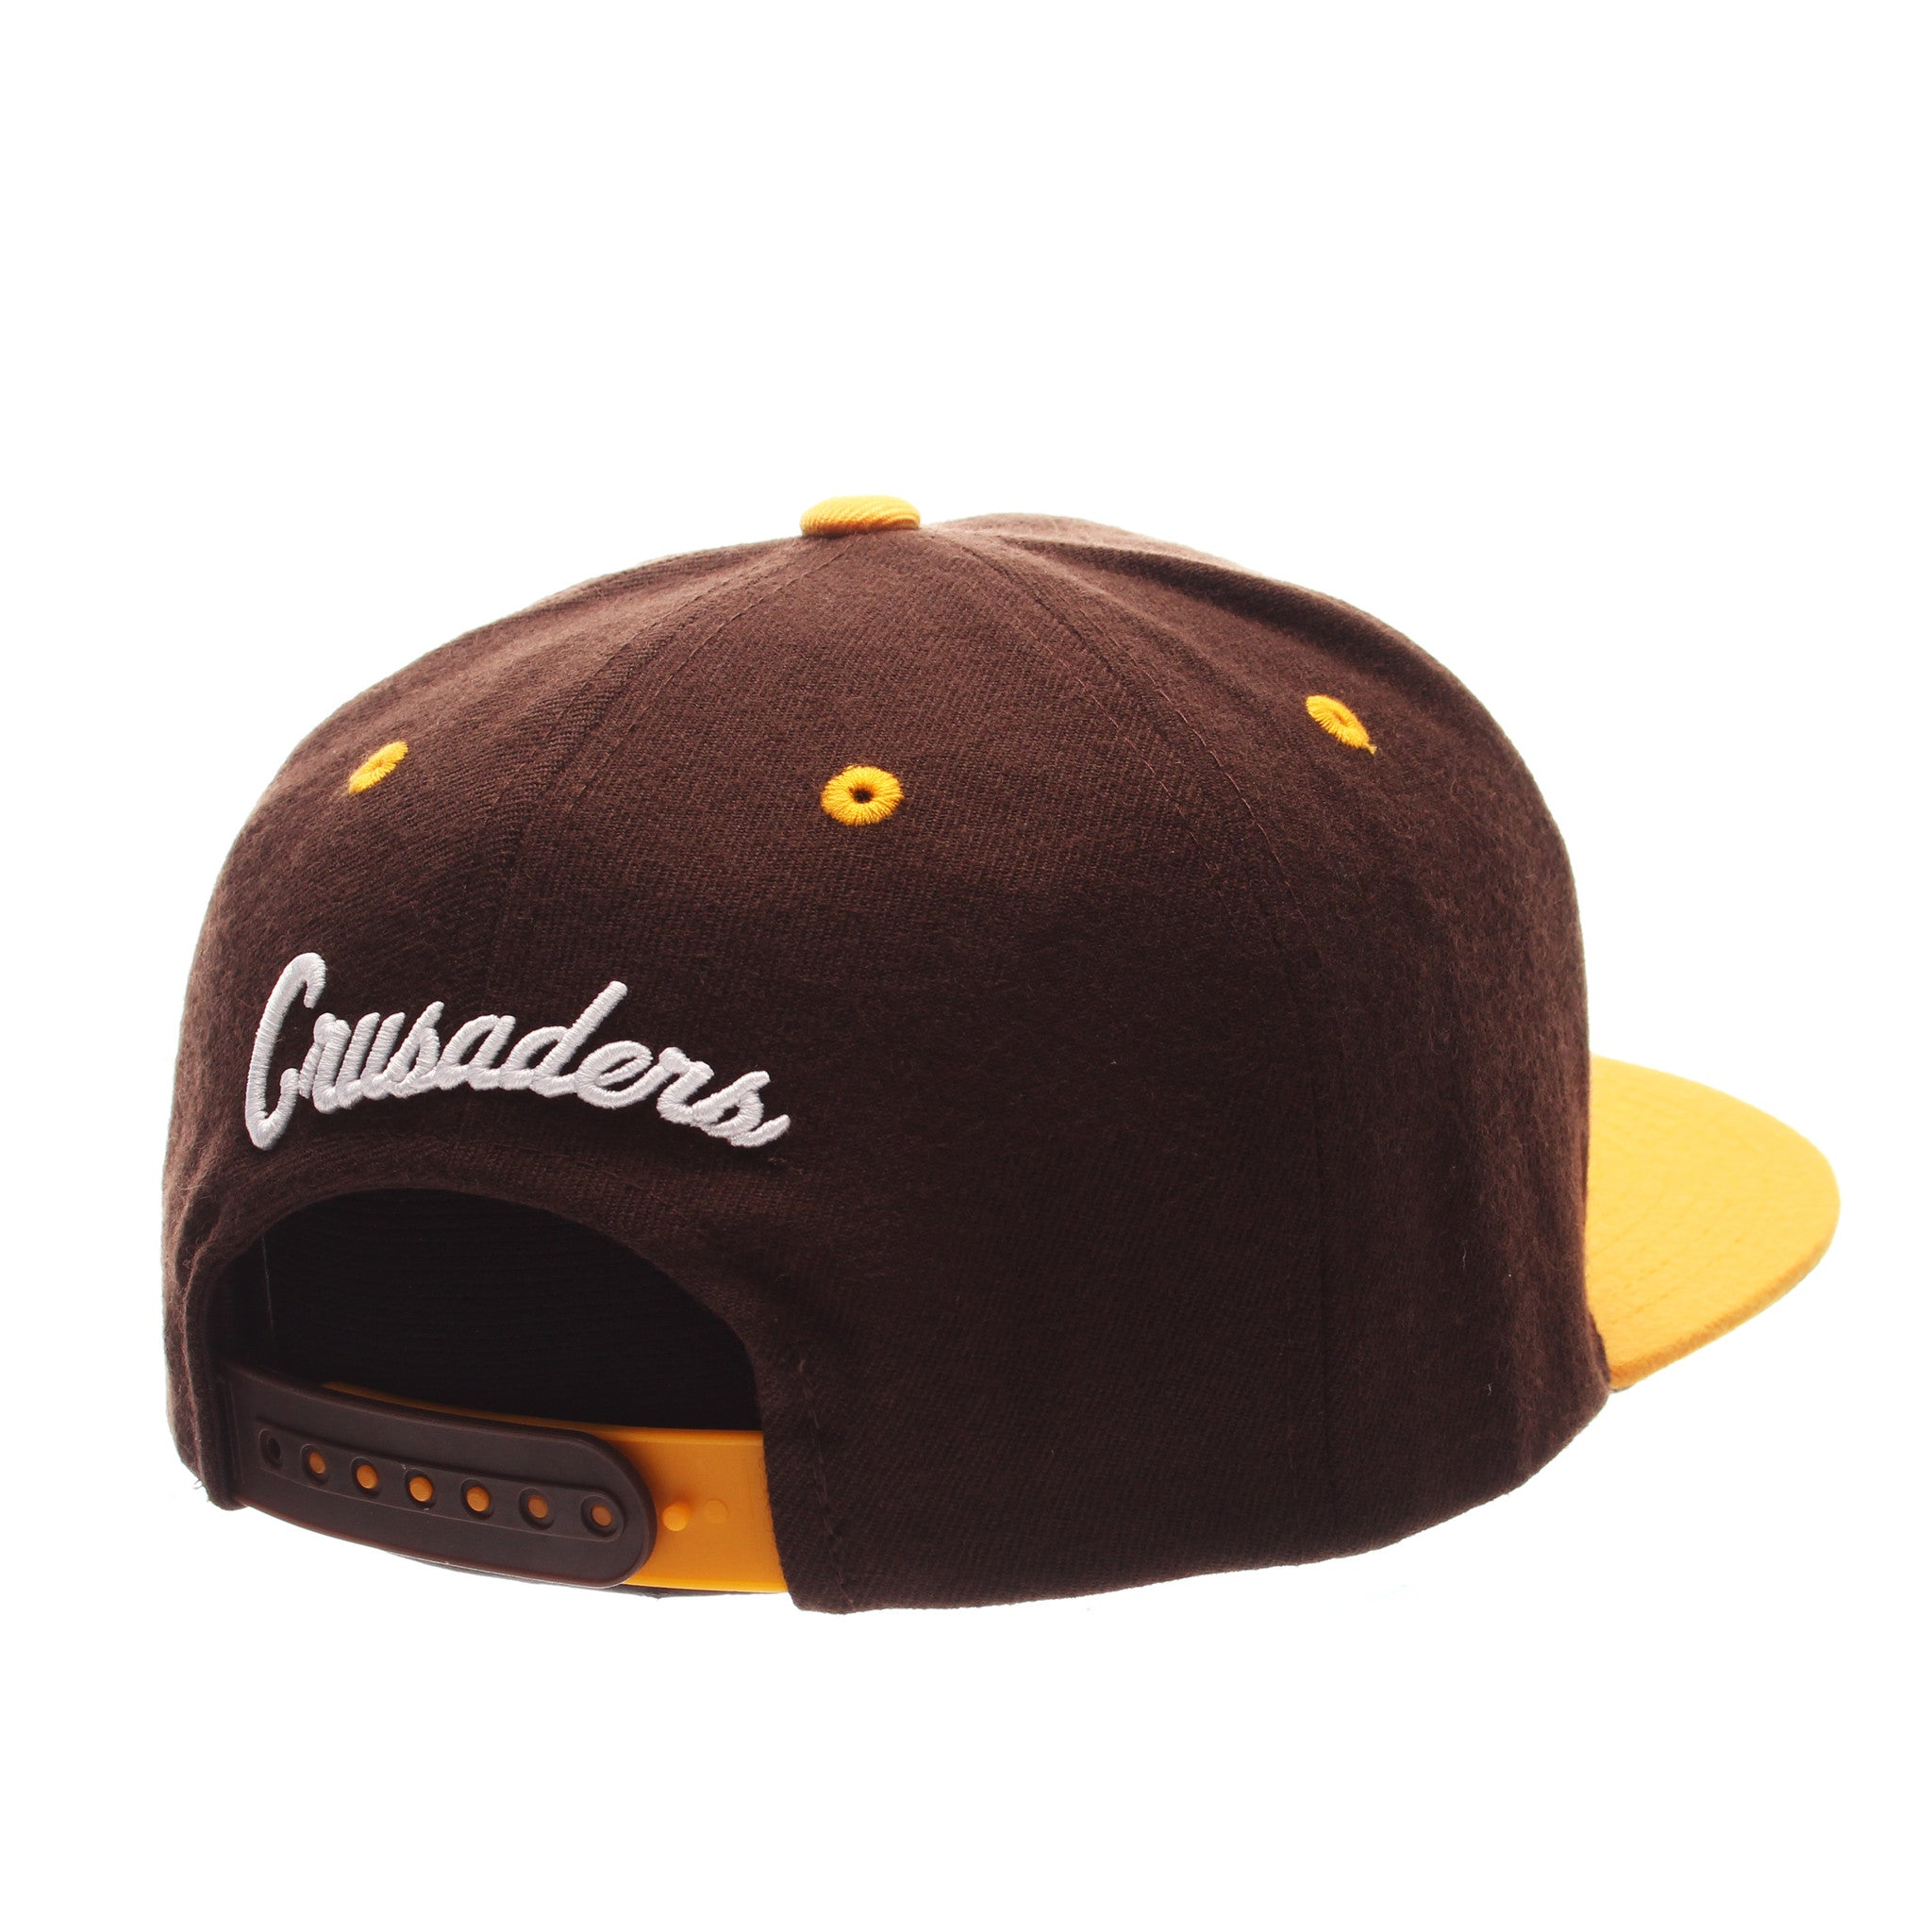 Valparaiso University Z11 32/5 (High) (VALPO W/SHIELD) Brown Dark Zwool Adjustable hats by Zephyr